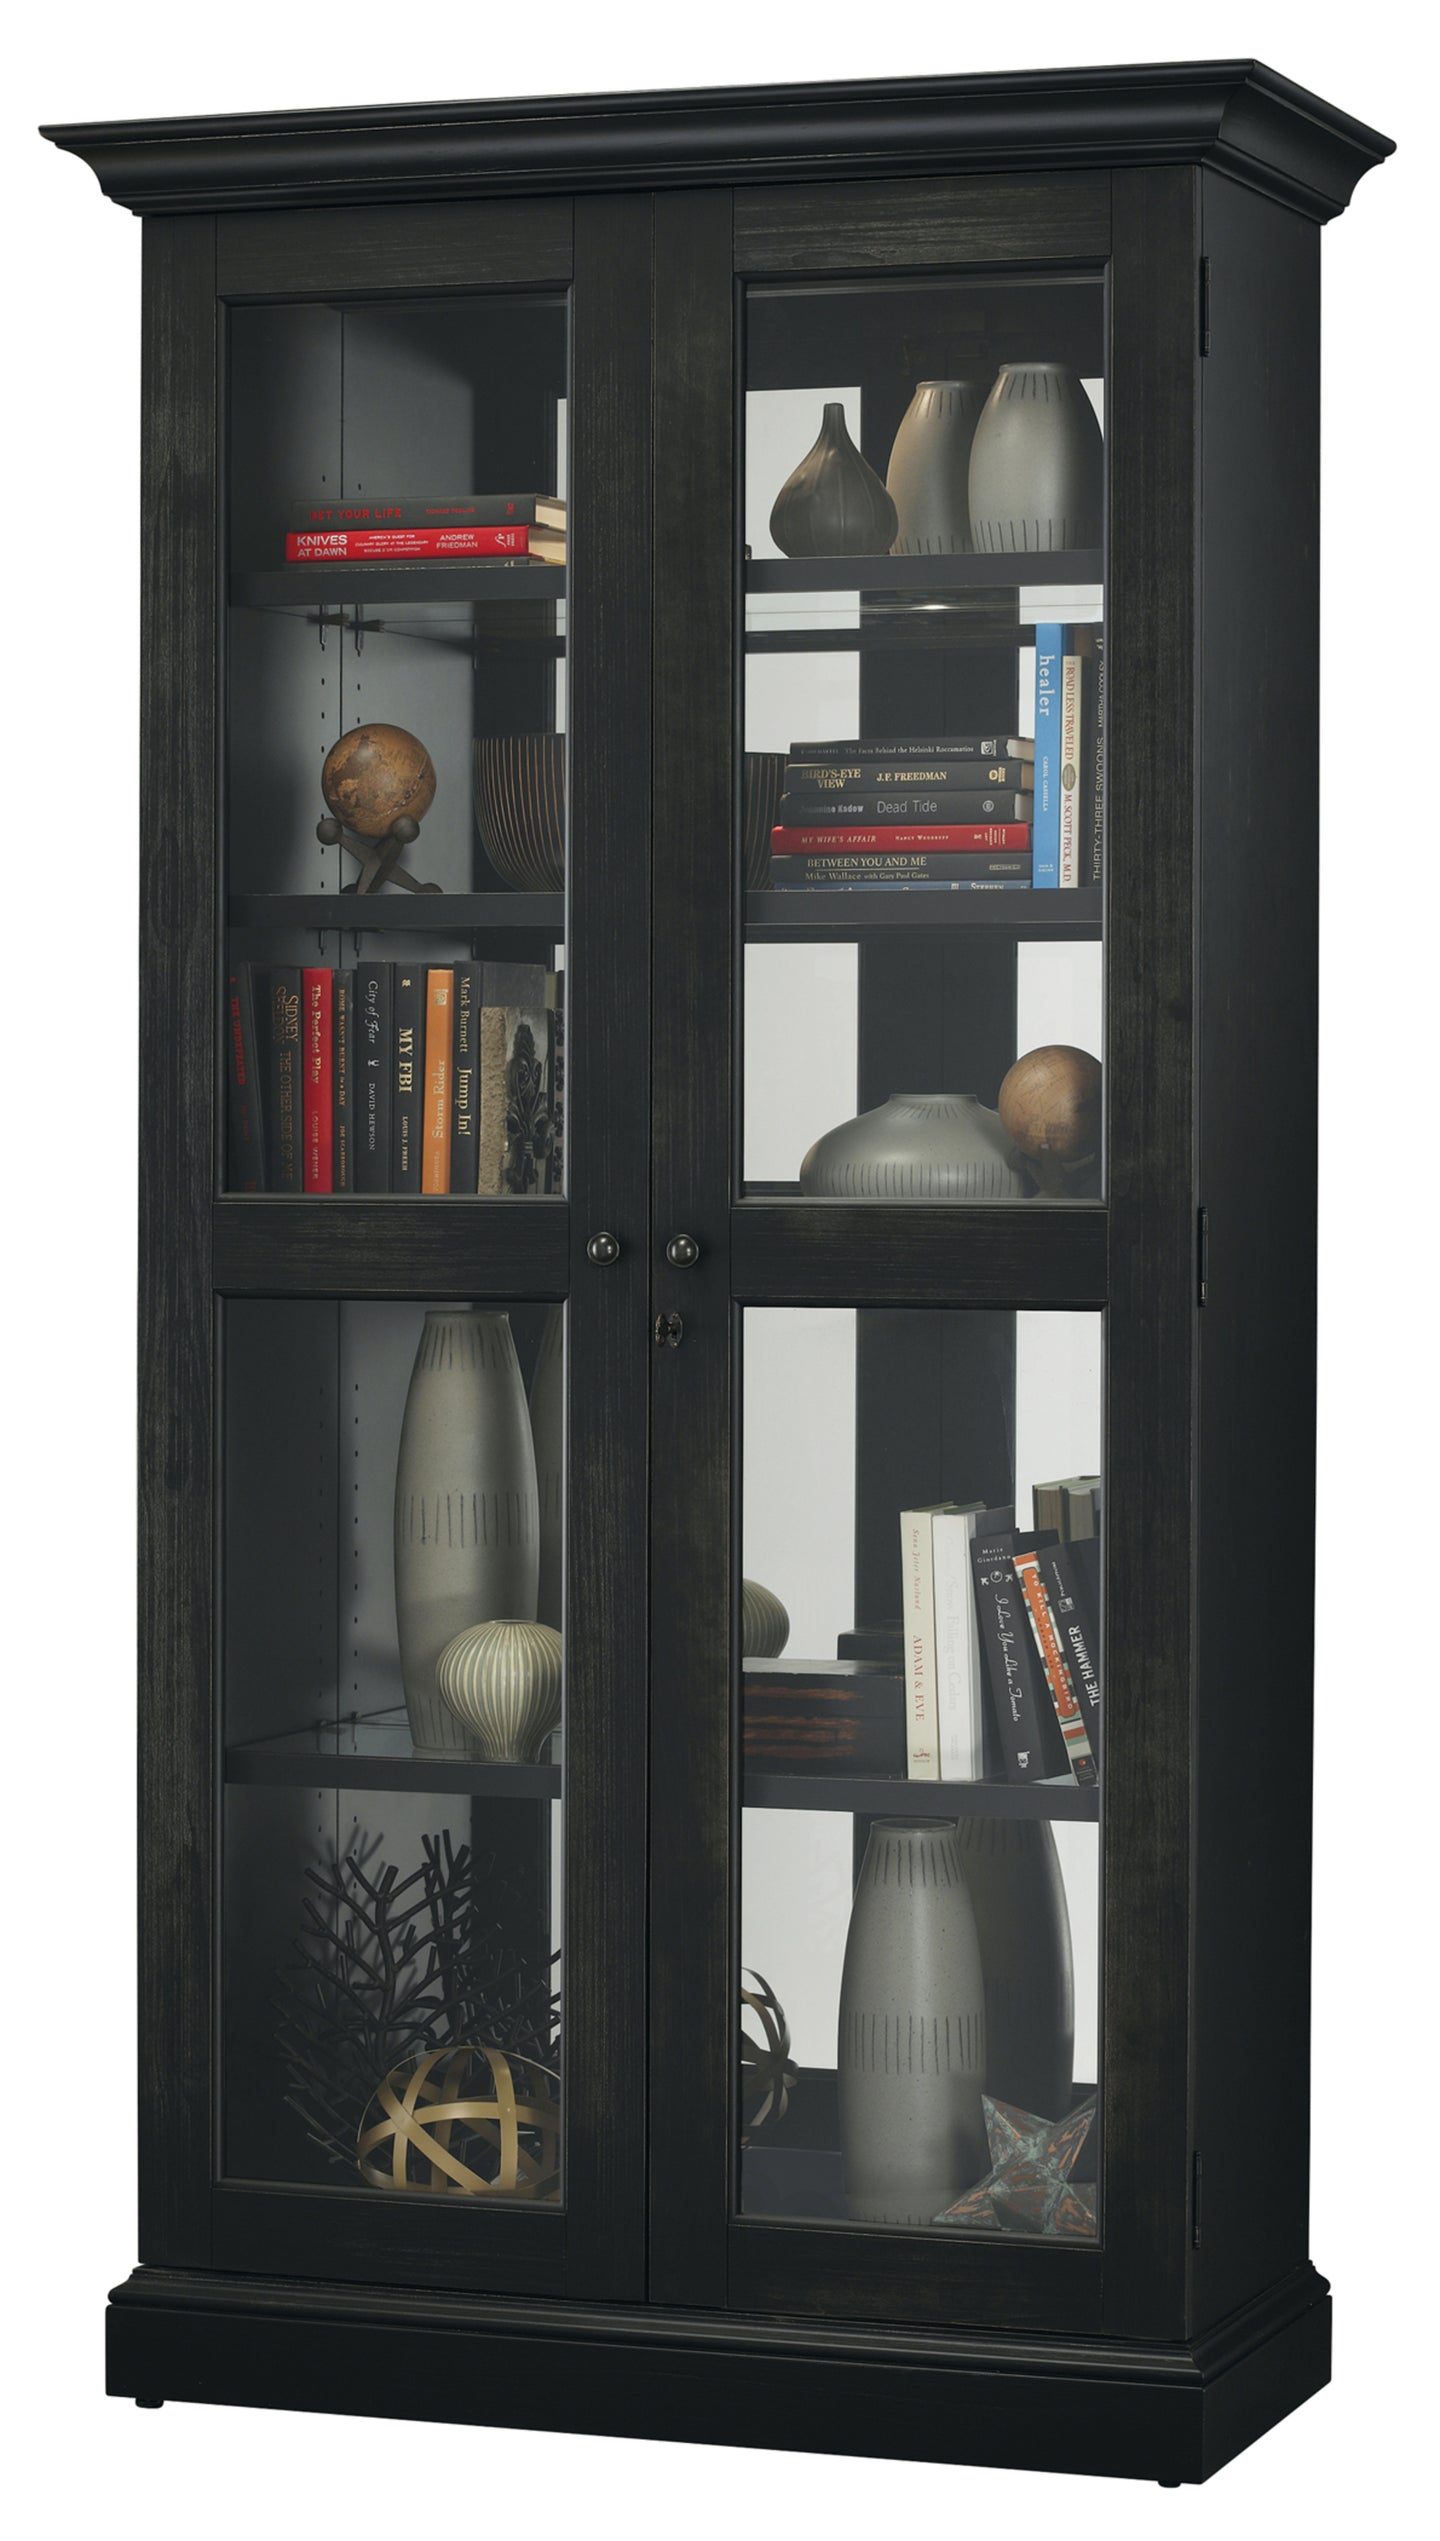 Howard Miller Lennon II Display Cabinet 670006 - Curios And More